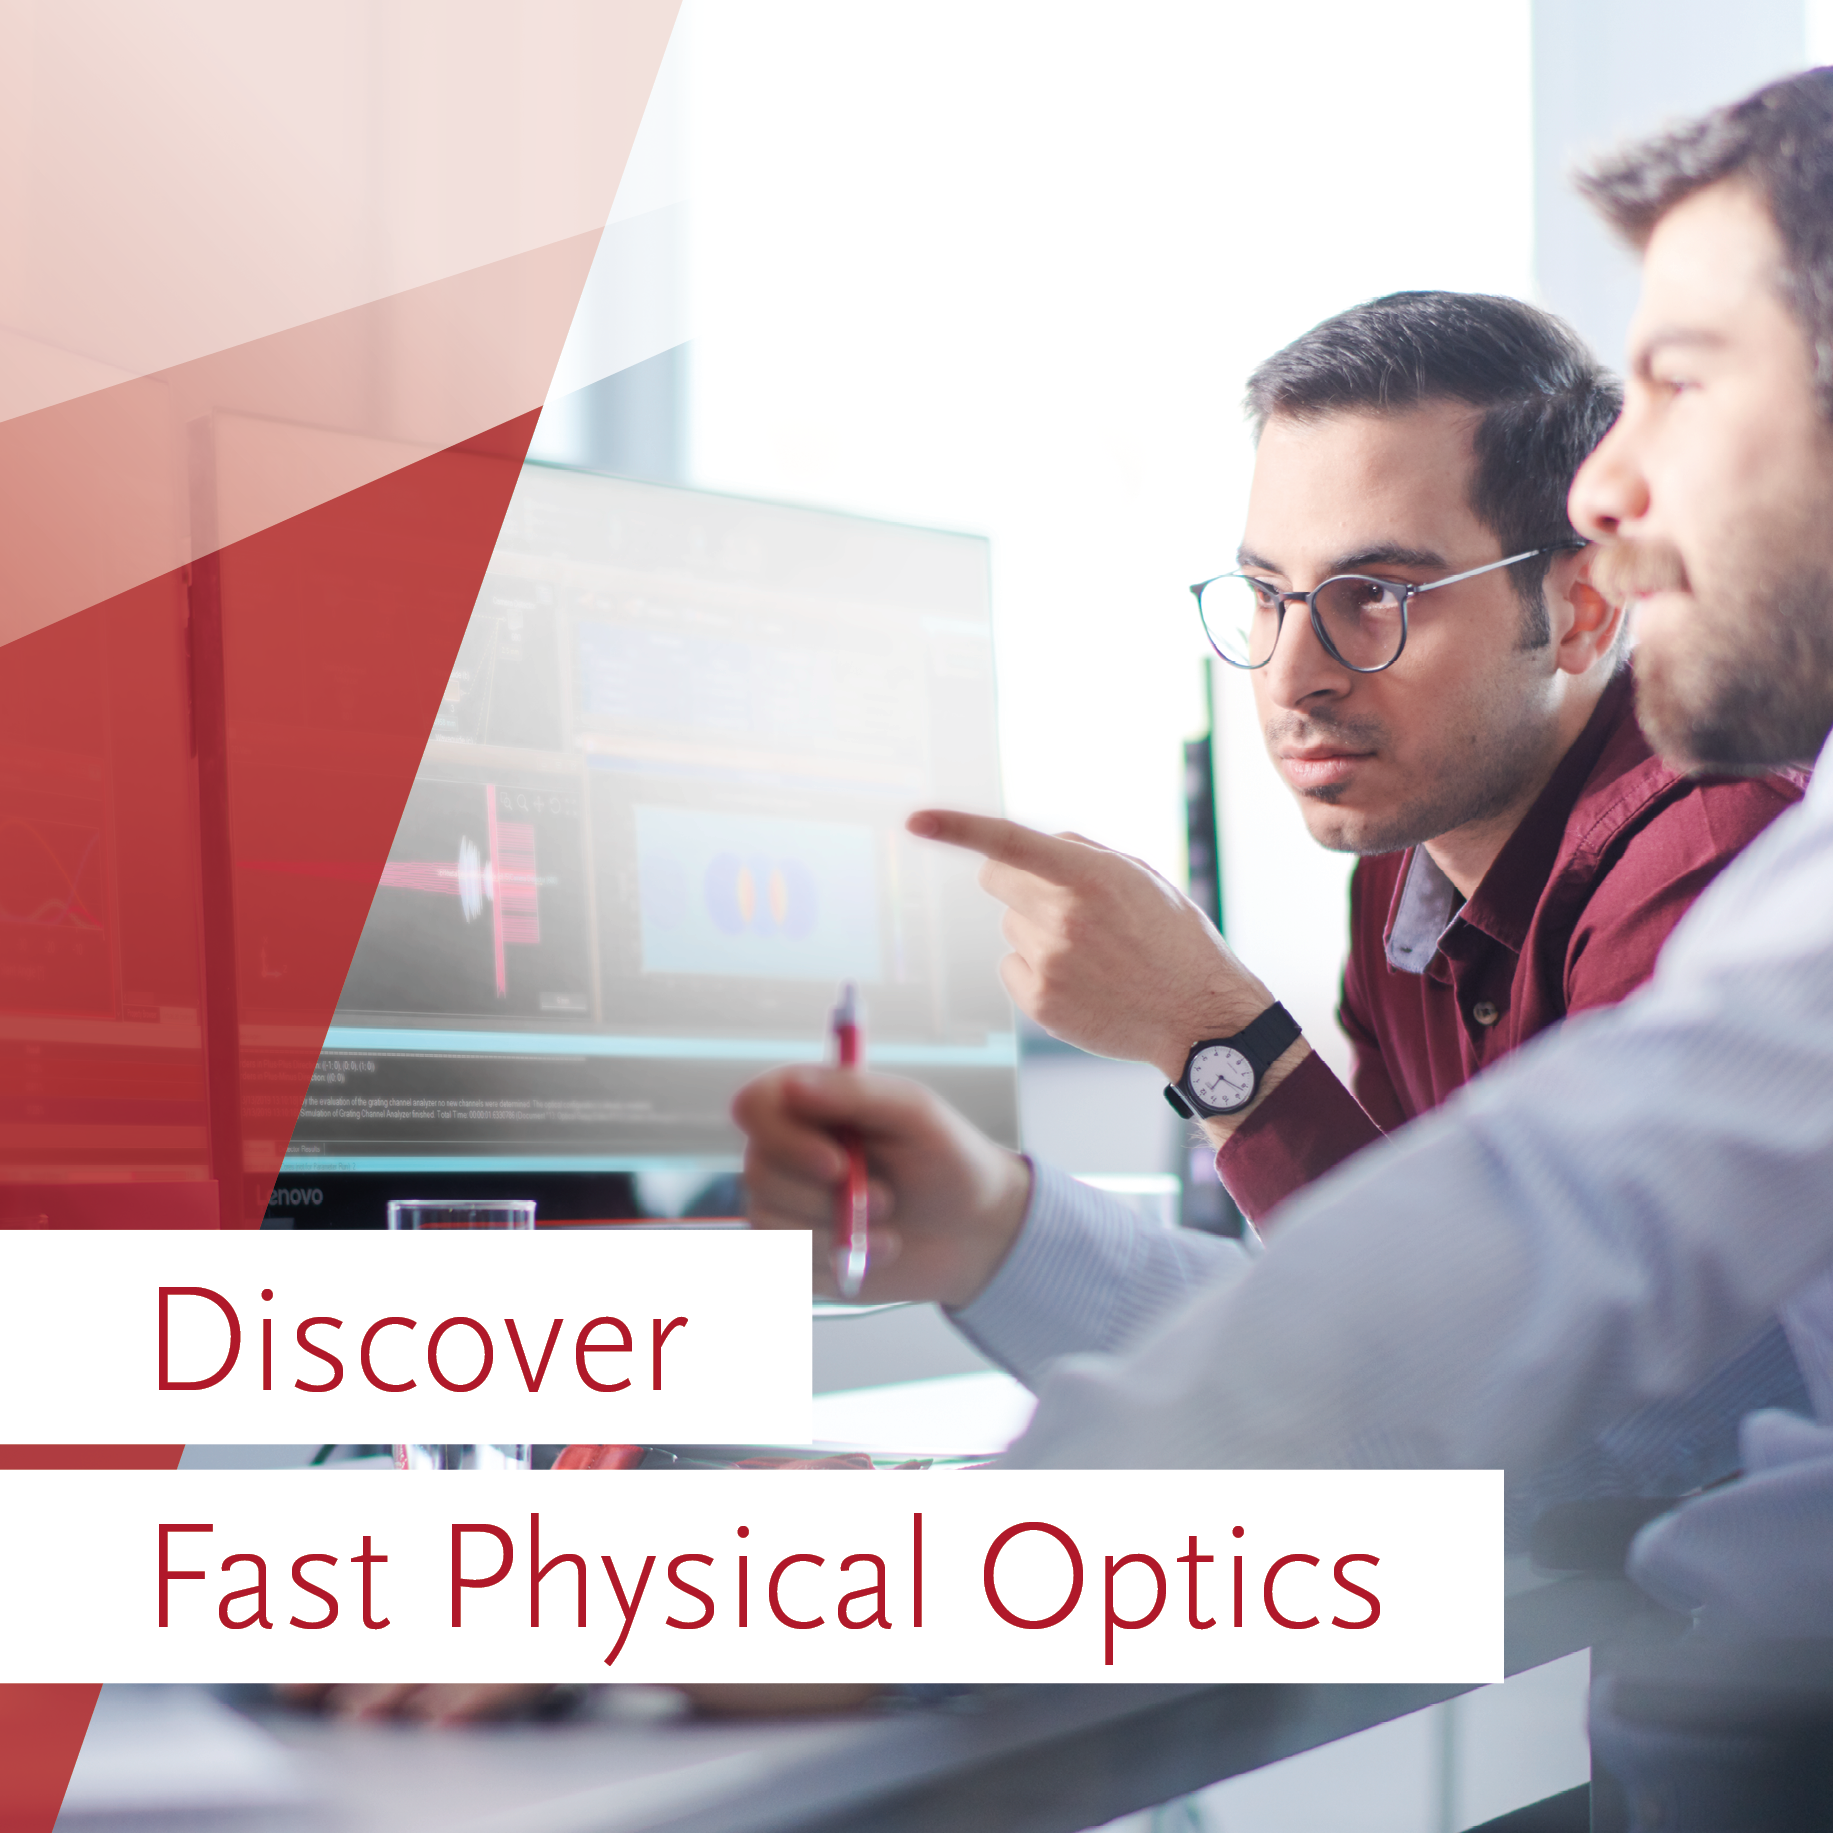 Discover Fast Physical Optics from LightTrans International UG